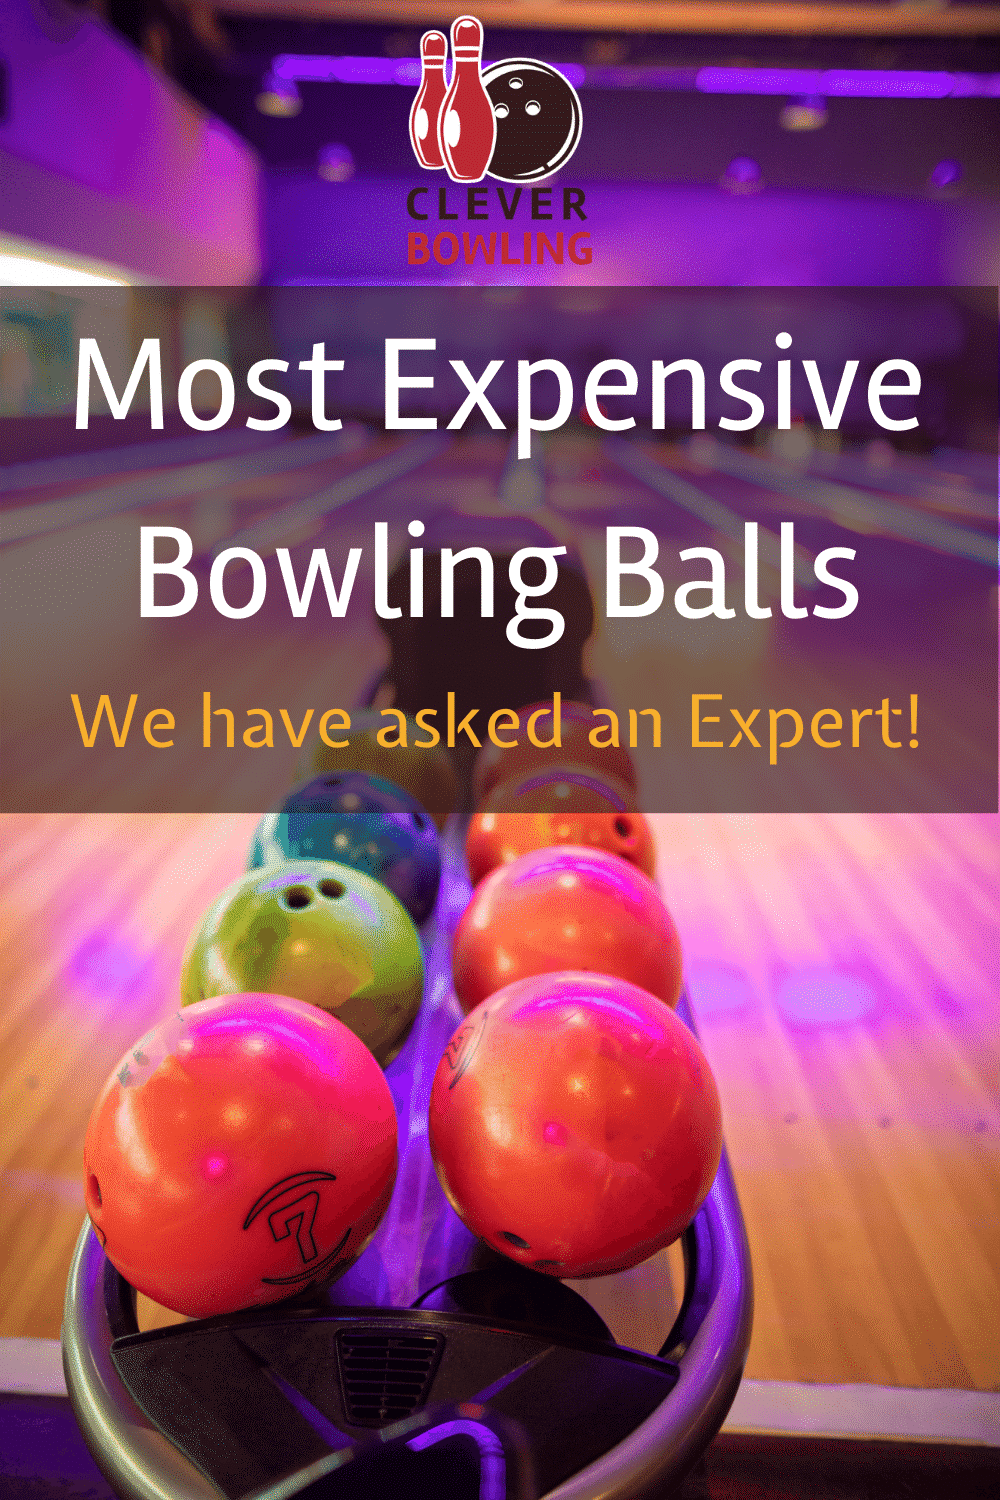 Most expensive bowling balls